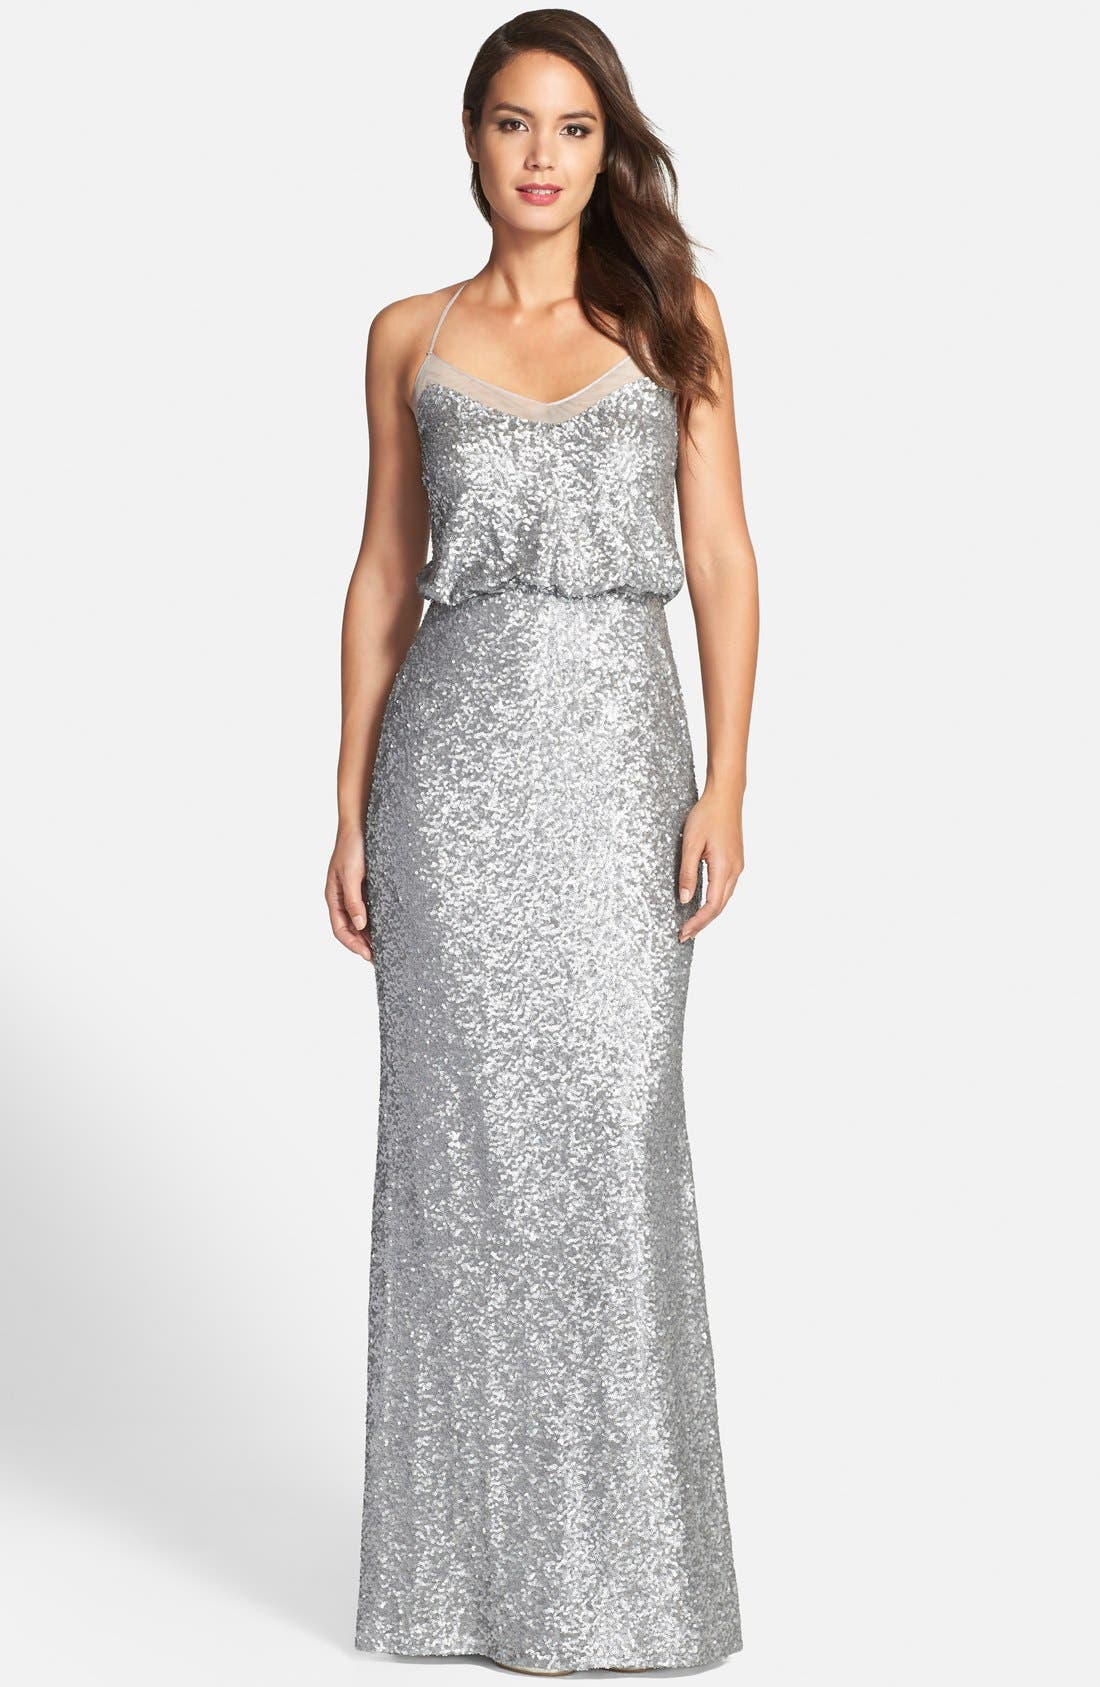 Badgley Mischka Sequin Mermaid Gown,                         Main,                         color, 042